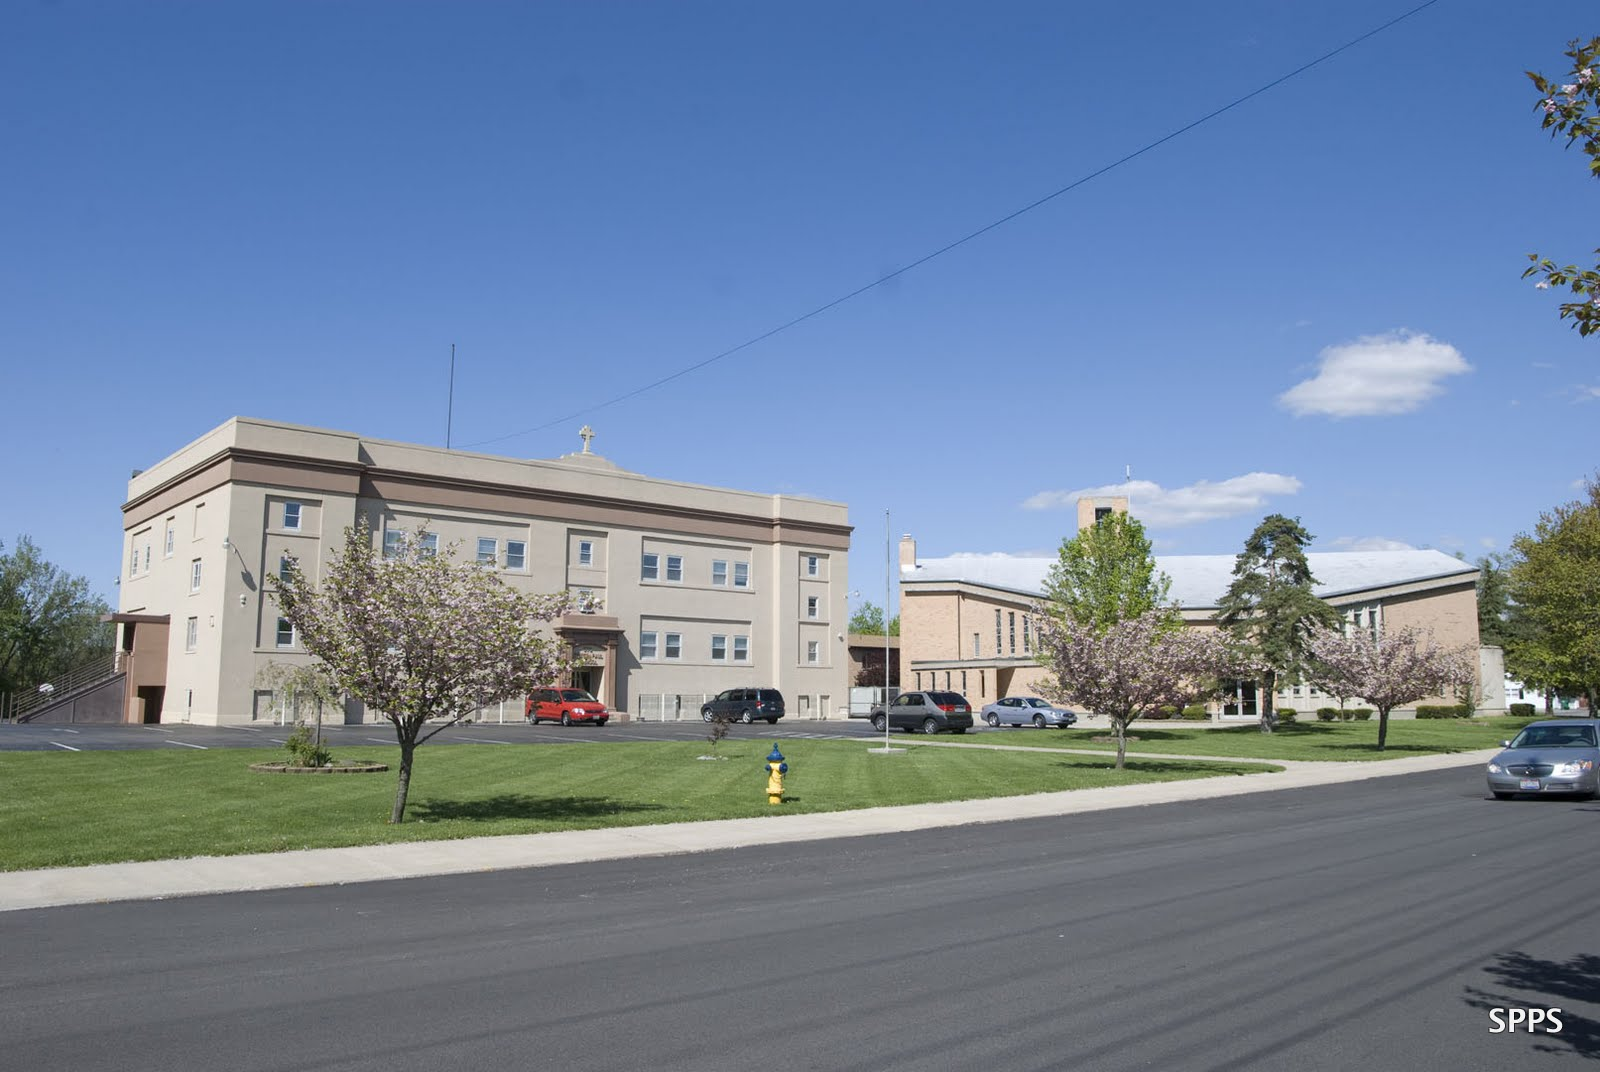 STS Peter and Paul Catholic School